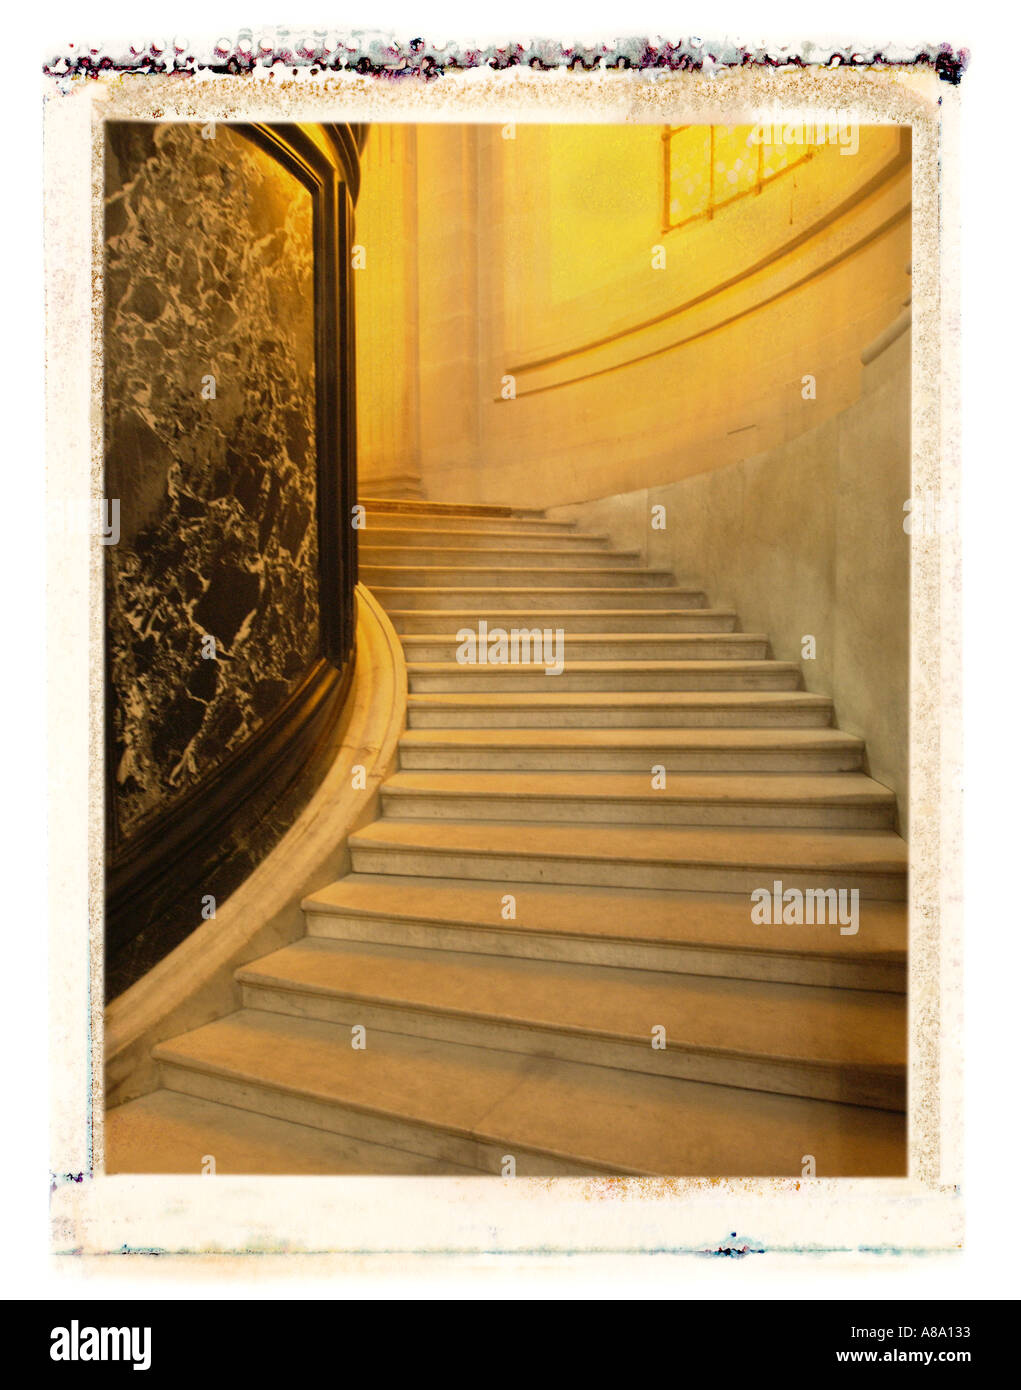 Stairway in Paris France Dome Church - Stock Image